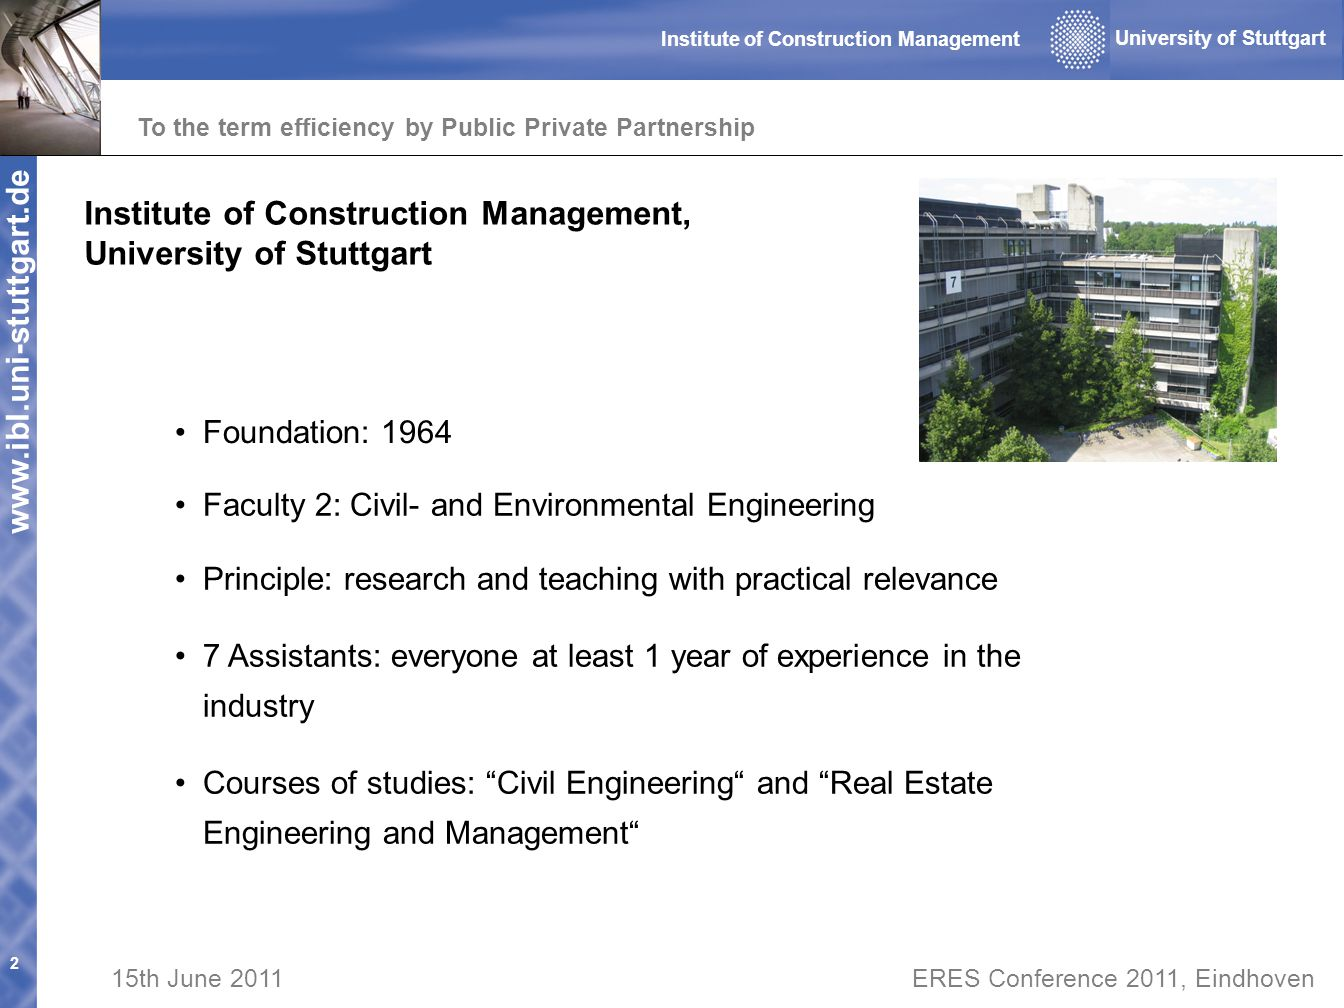 www.ibl.uni-stuttgart.de To the term efficiency by Public Private Partnership 2 University of Stuttgart Institute of Construction Management 15th June 2011ERES Conference 2011, Eindhoven Institute of Construction Management, University of Stuttgart Faculty 2: Civil- and Environmental Engineering Foundation: 1964 Principle: research and teaching with practical relevance 7 Assistants: everyone at least 1 year of experience in the industry Courses of studies: Civil Engineering and Real Estate Engineering and Management